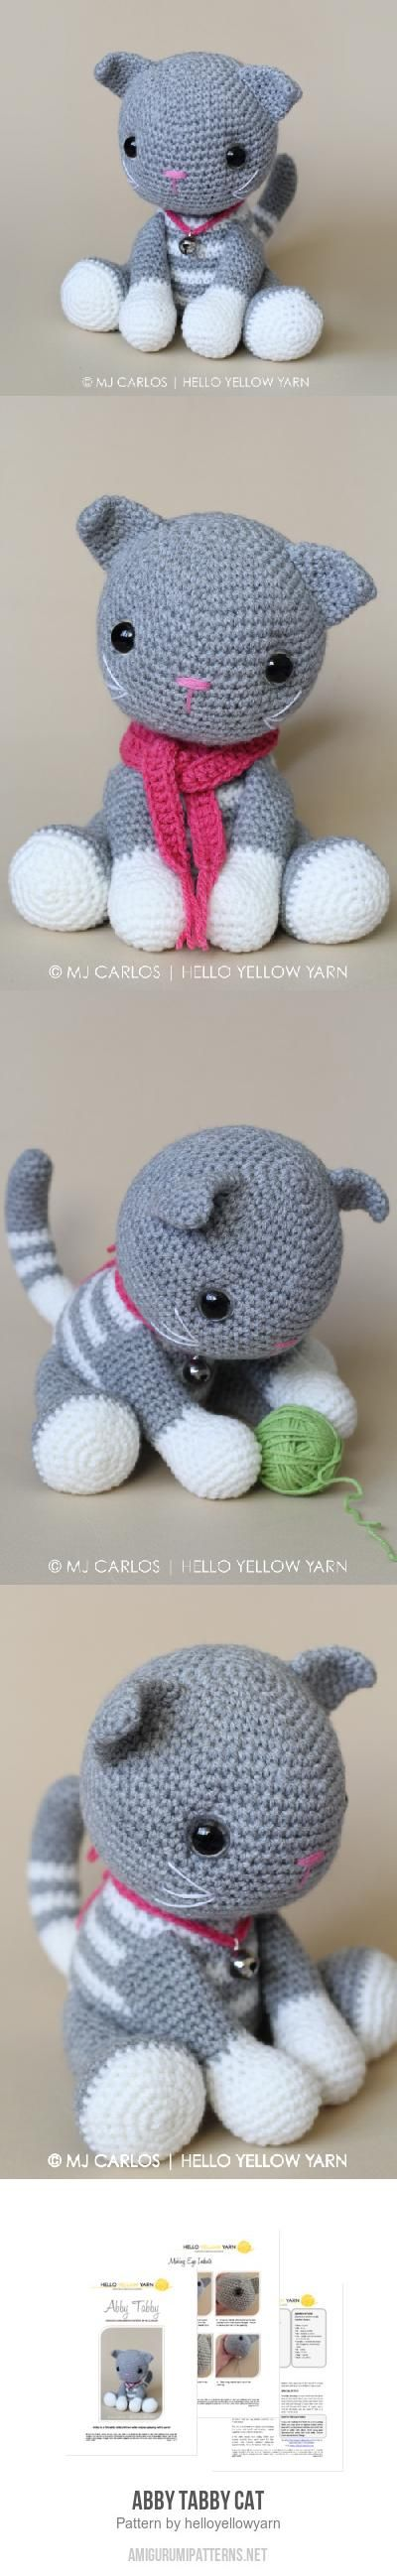 Abby Tabby Cat Amigurumi Pattern